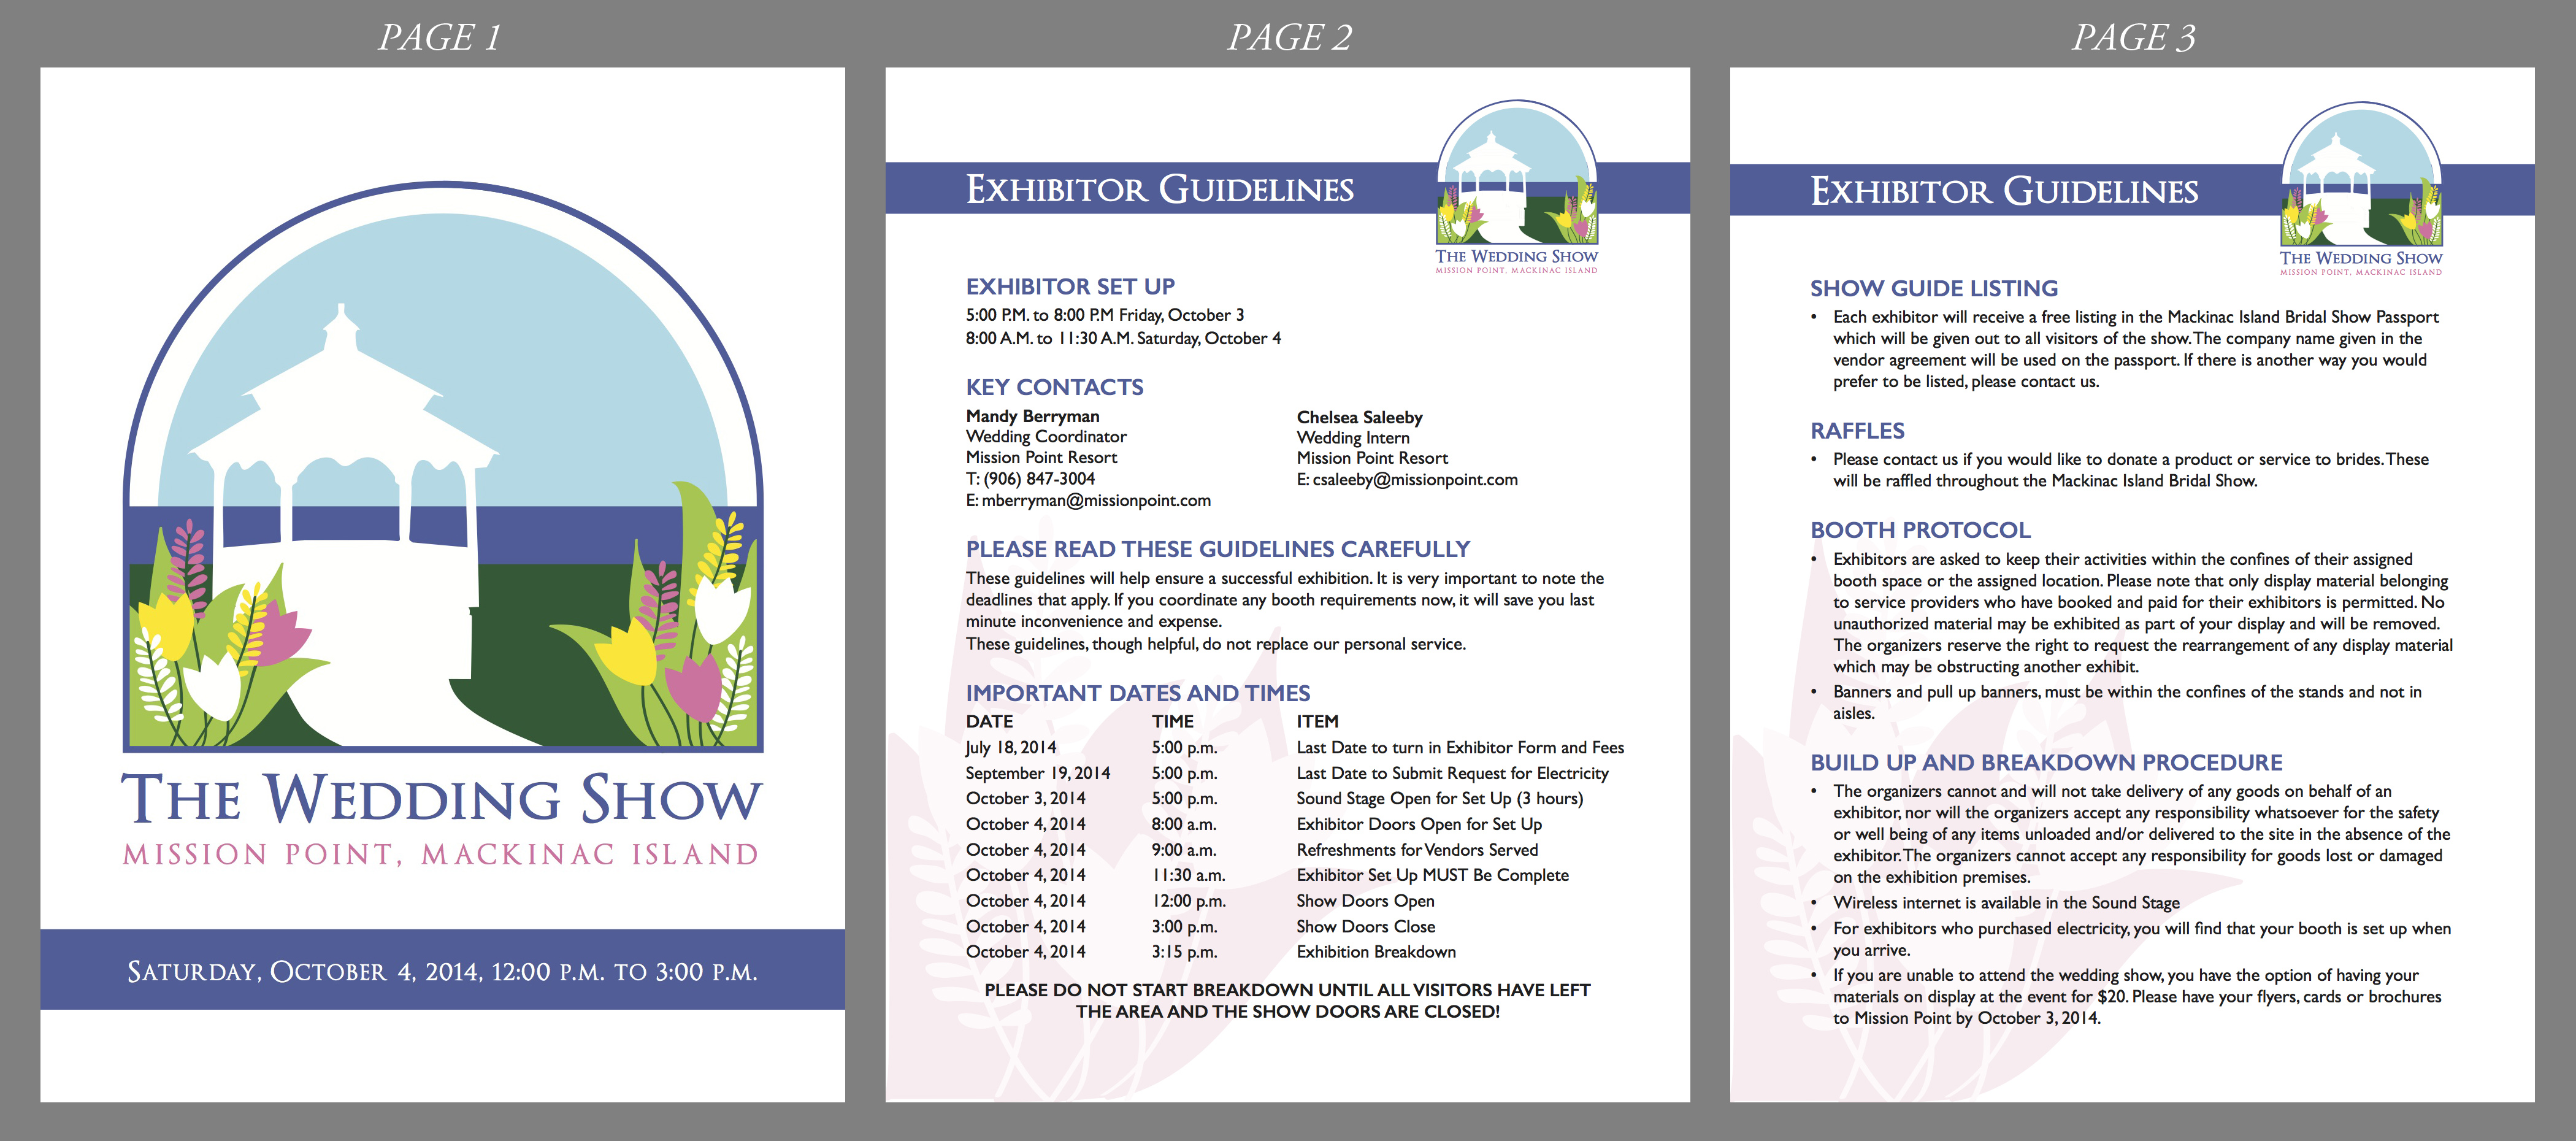 The Wedding Show Exhibitor Manual